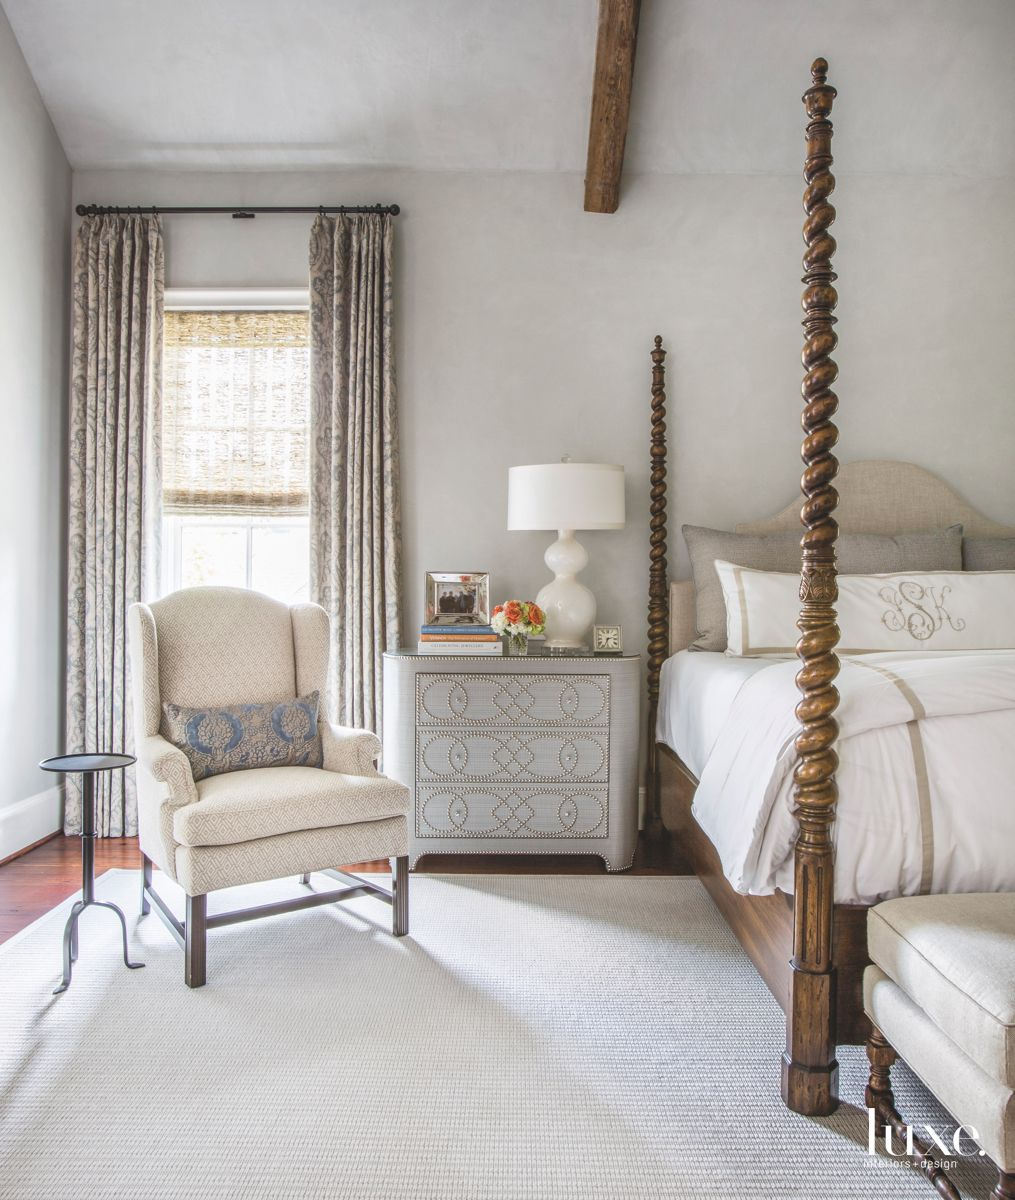 Four Poster Bed White and Gray Master Bedroom with Seat and Side Table